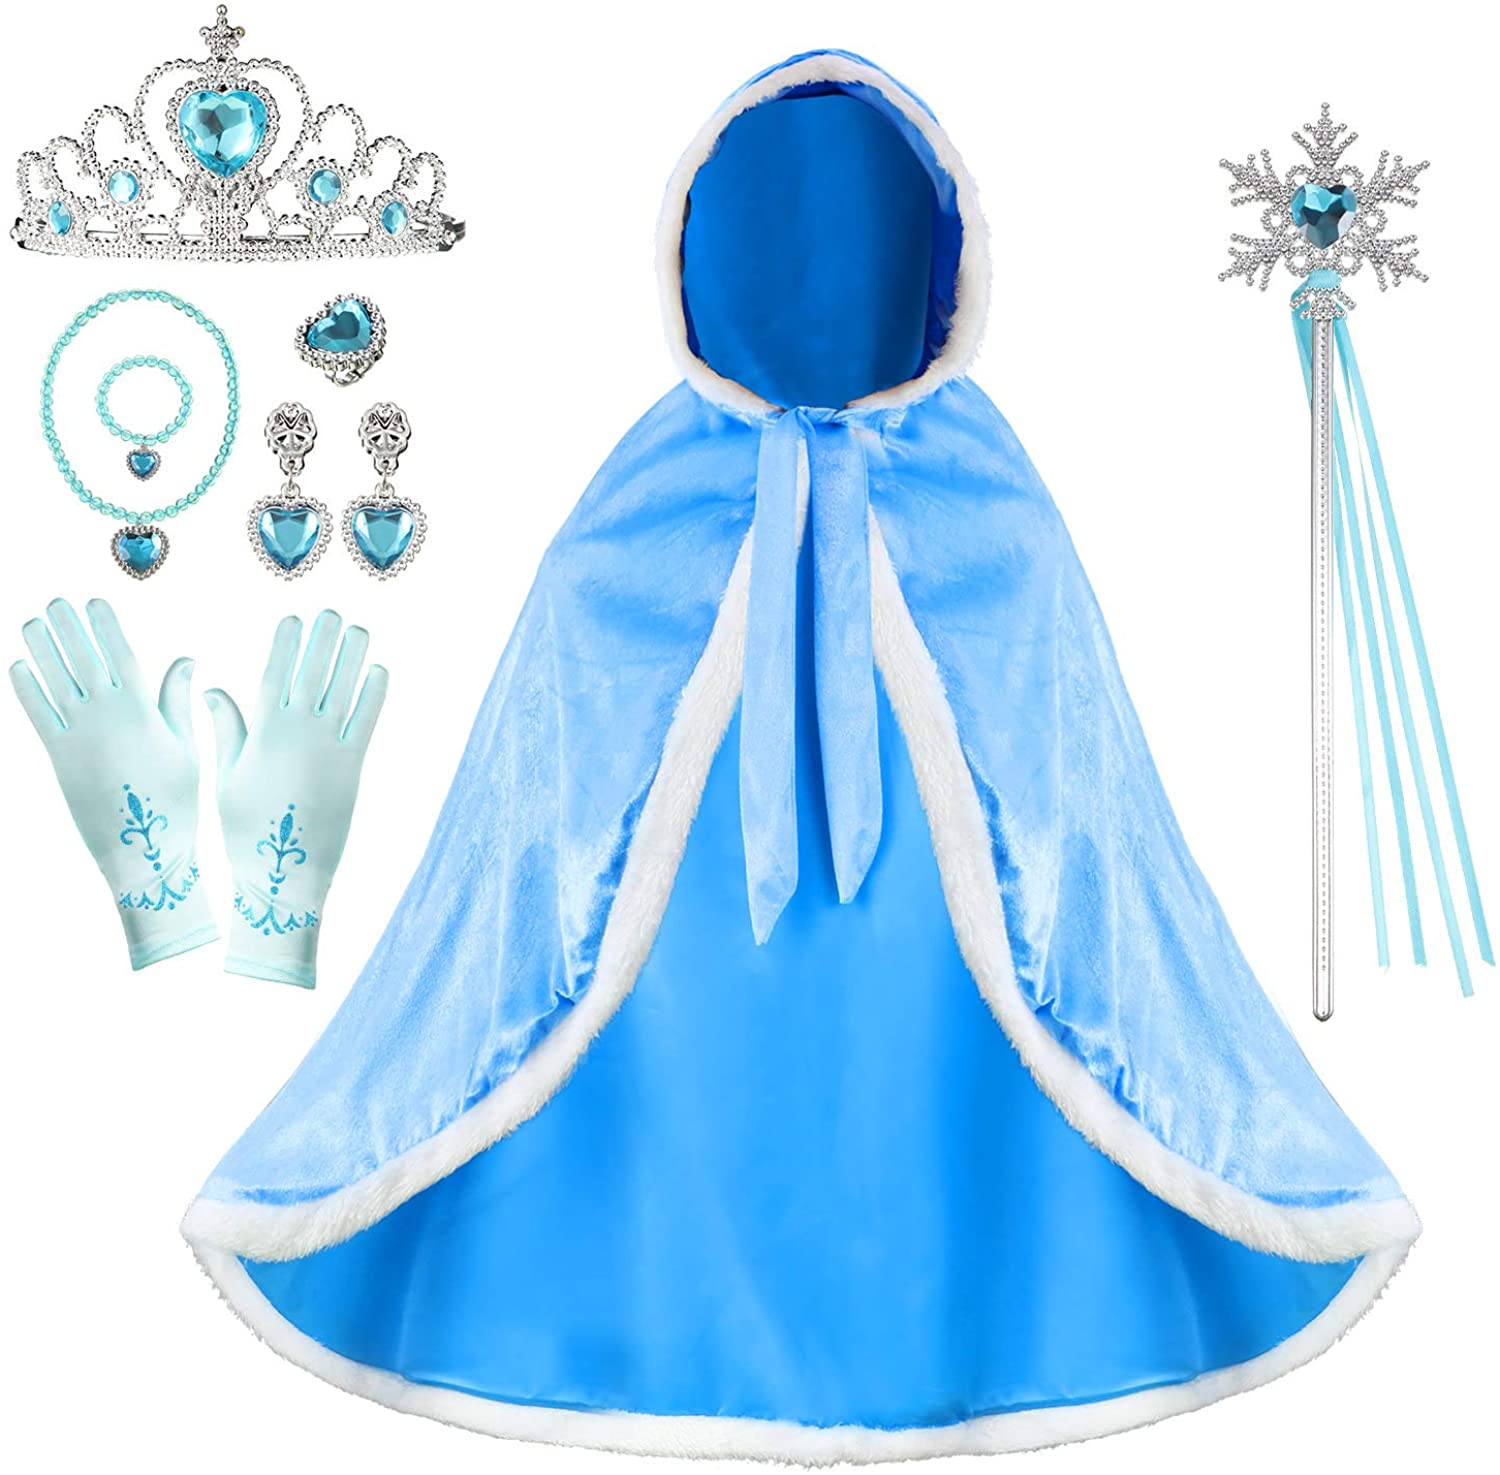 Geyoga Princess Dresses Girls Costumes with Faux Fur Princess Hooded Cape Cloak for Girls Birthday Halloween Party Cosplay